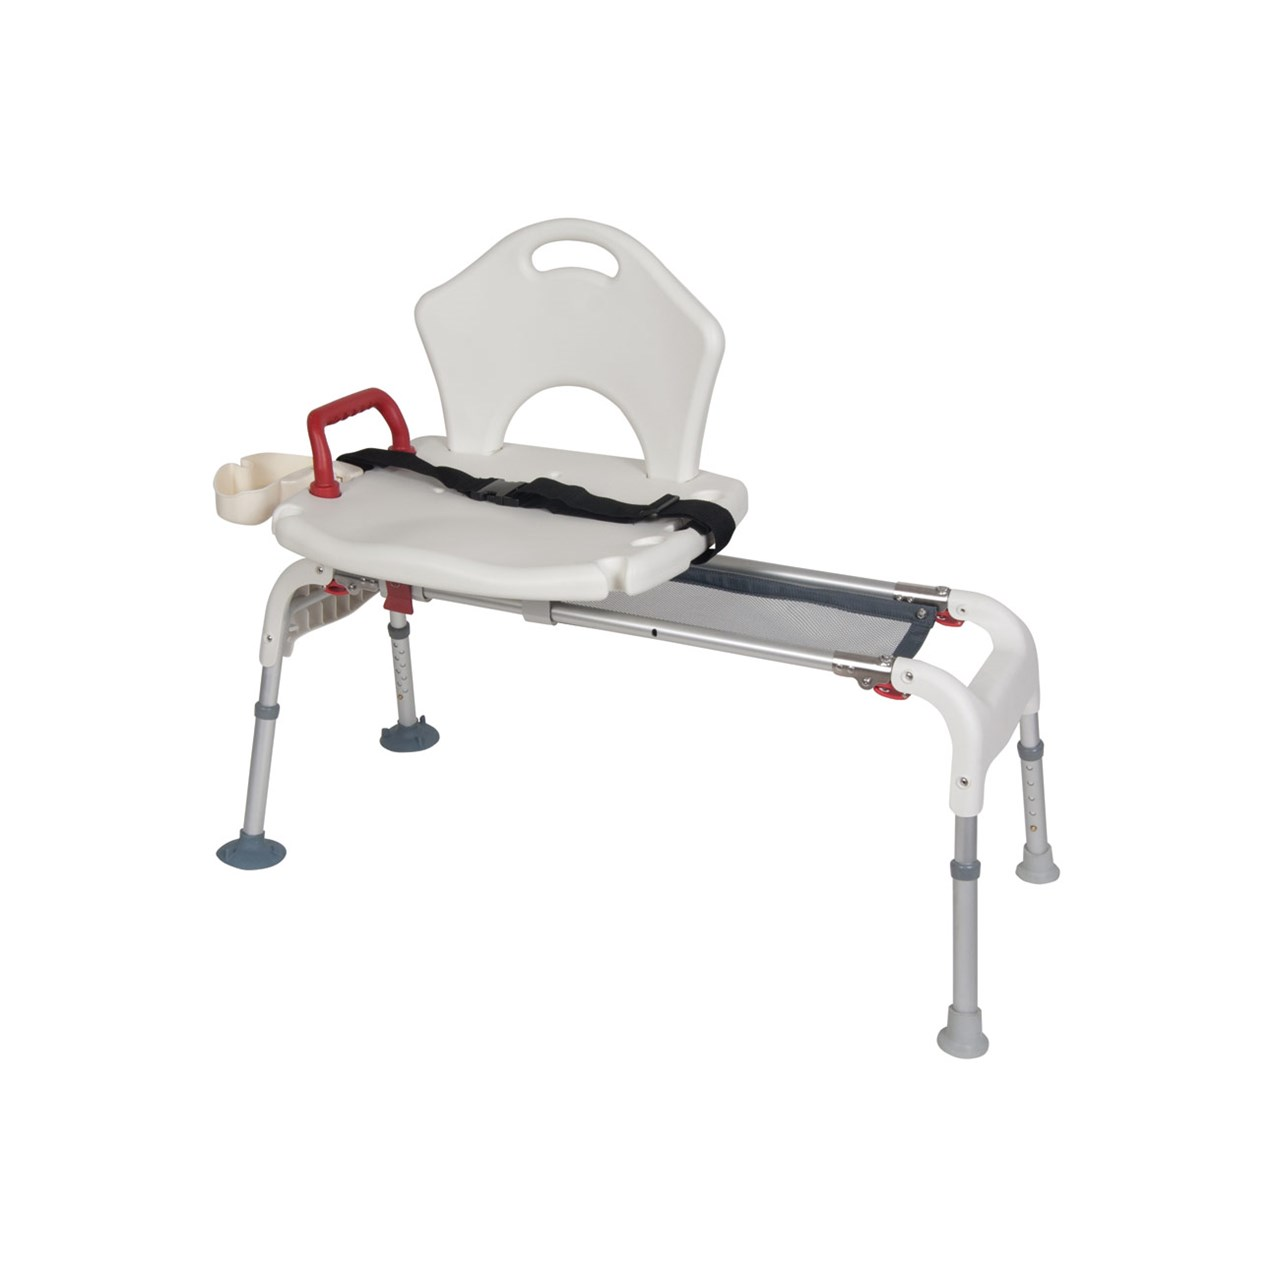 Maxiaids Drive Folding Universal Sliding Transfer Bench